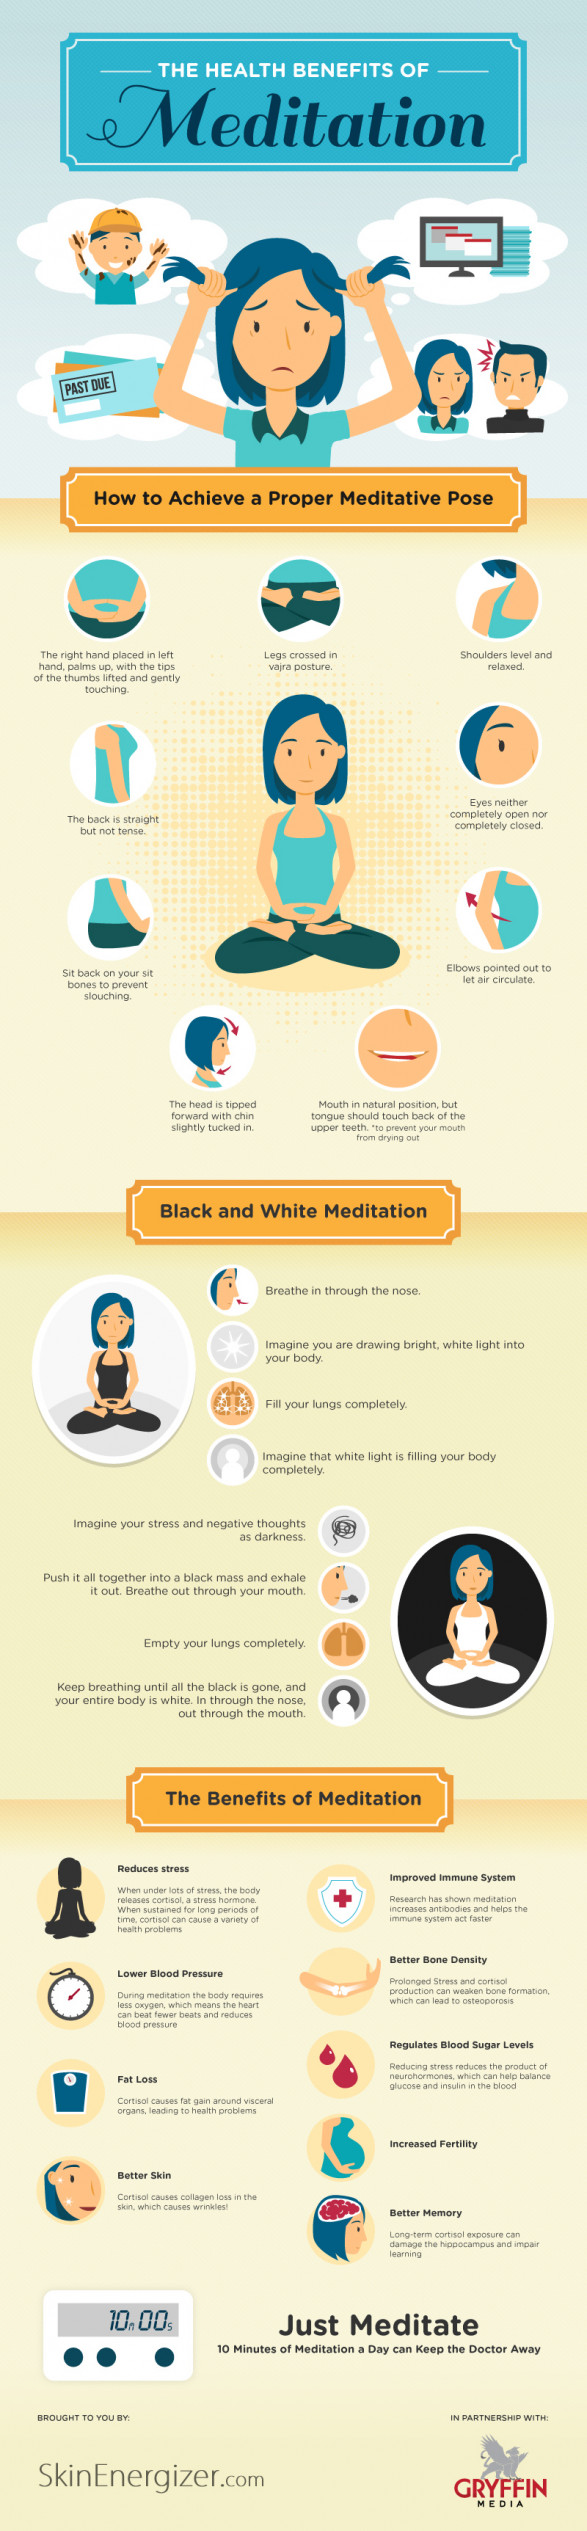 Tired? Stressed? Just Meditate!